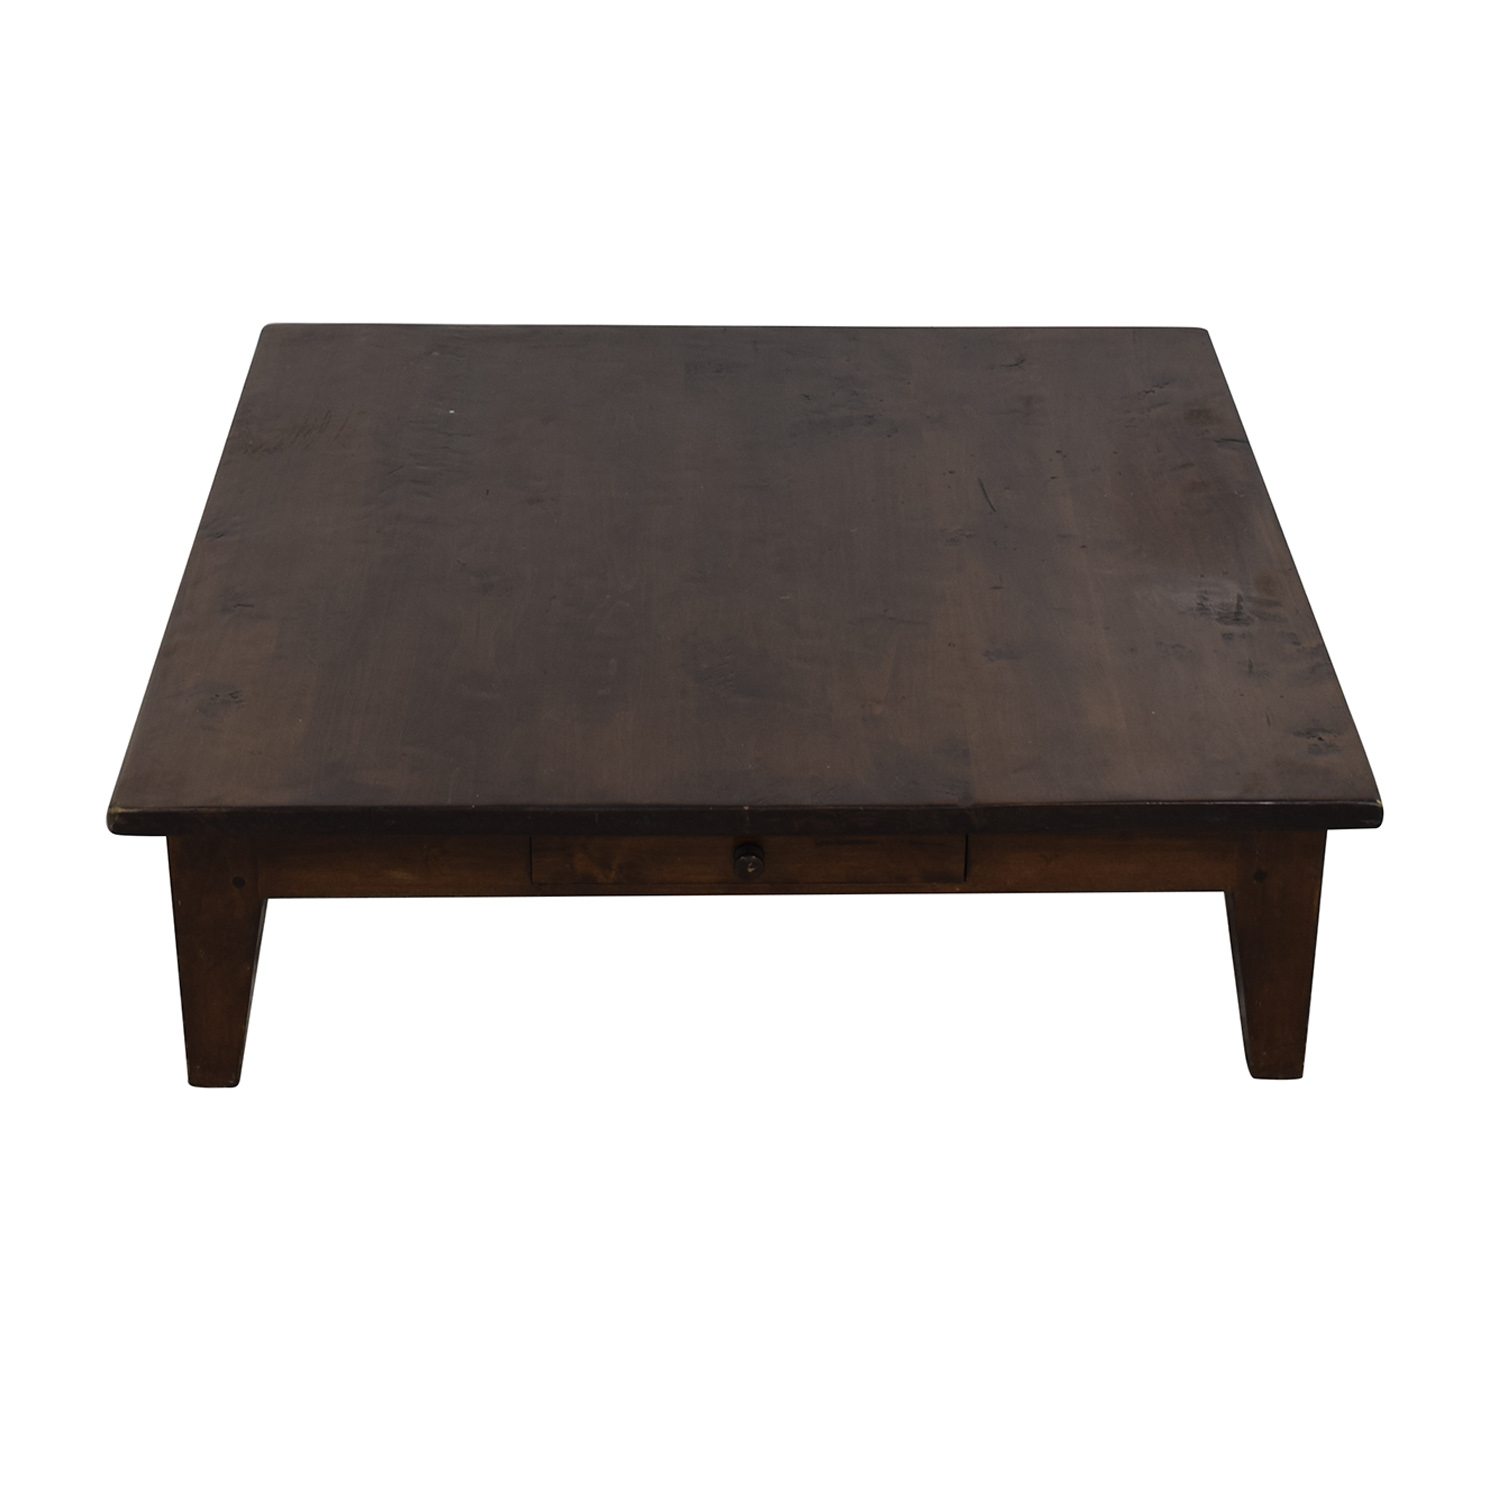 Vintage Single Drawer Low Profile Coffee Table Coffee Tables